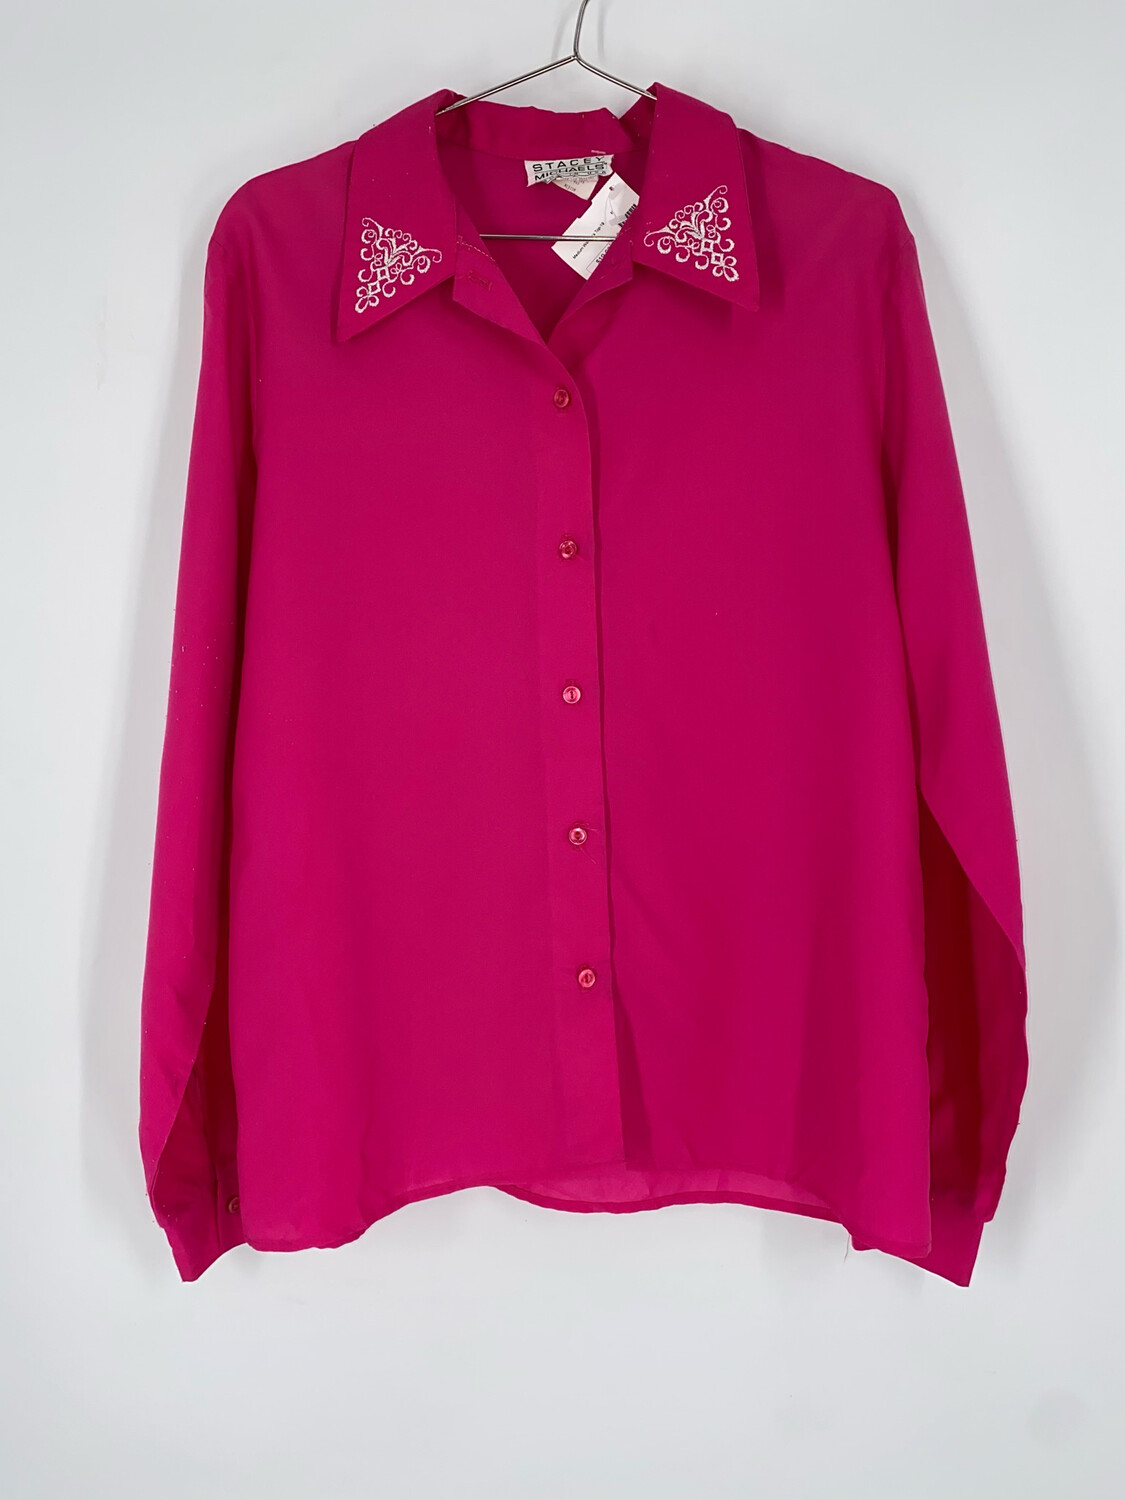 Stacy Michaels Embroidered Button Up Top Size M